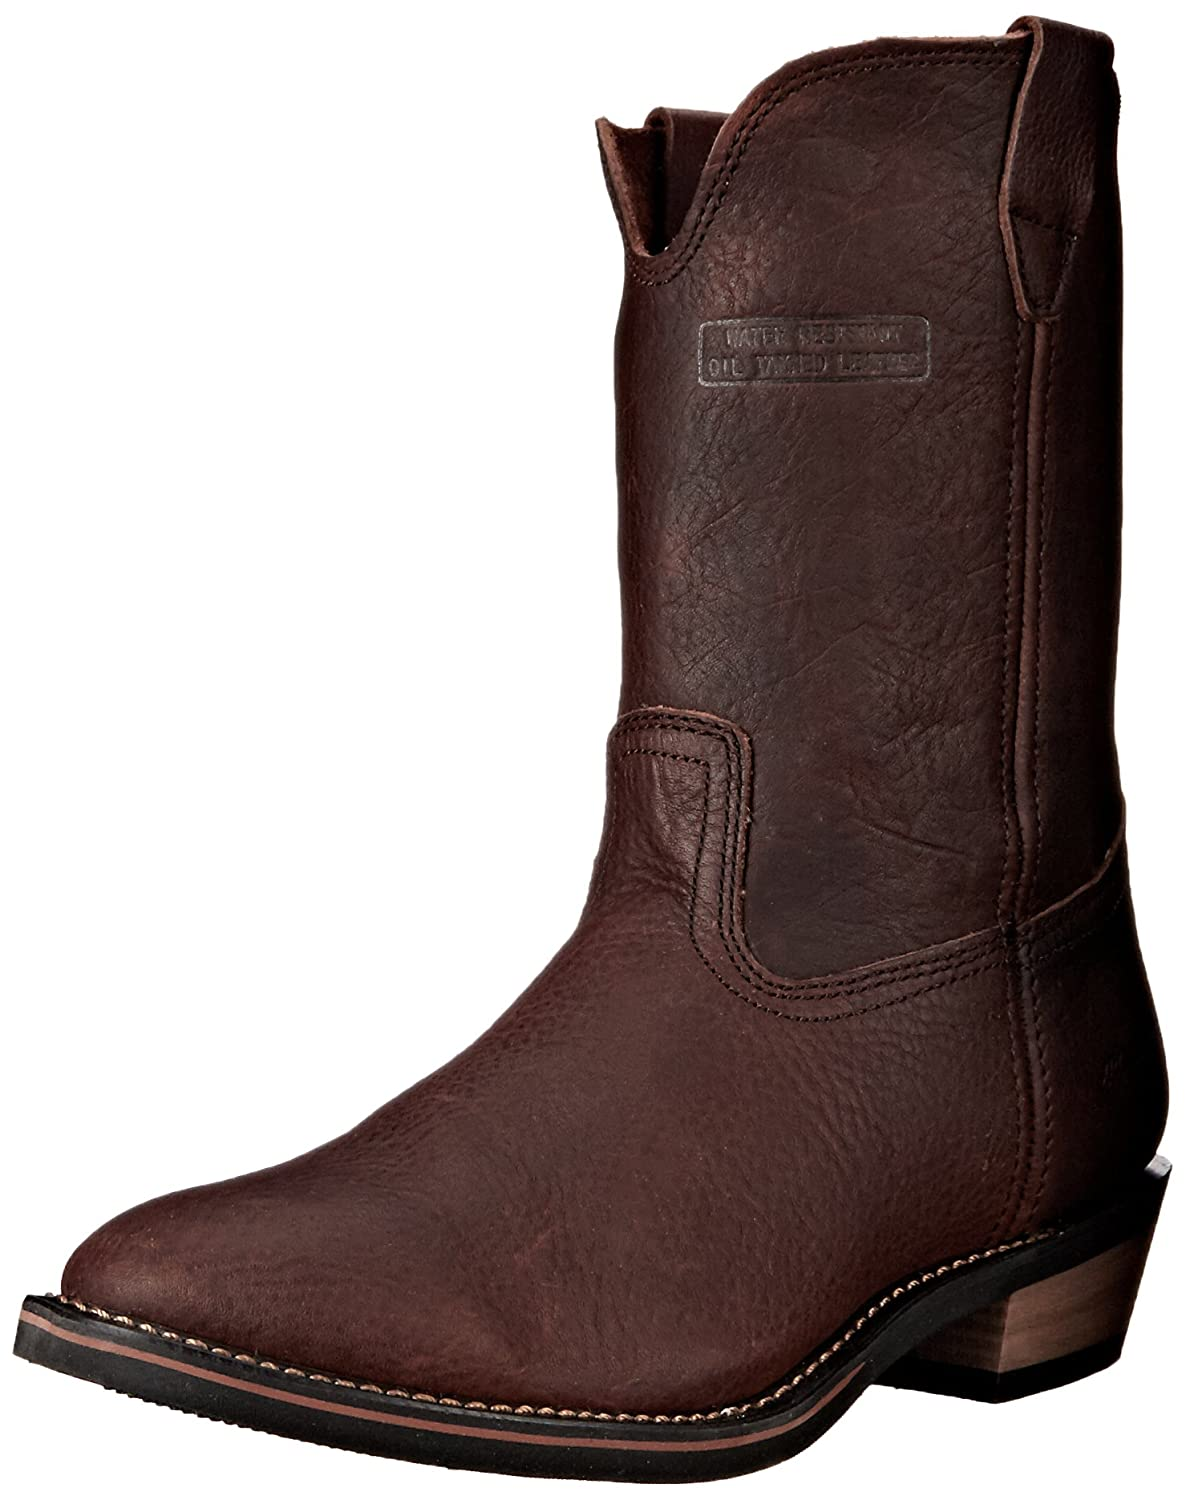 Adtec Men's 12 inch Ranch Wellington Boot B003XPNQZK 13 D(M) US|Reddish